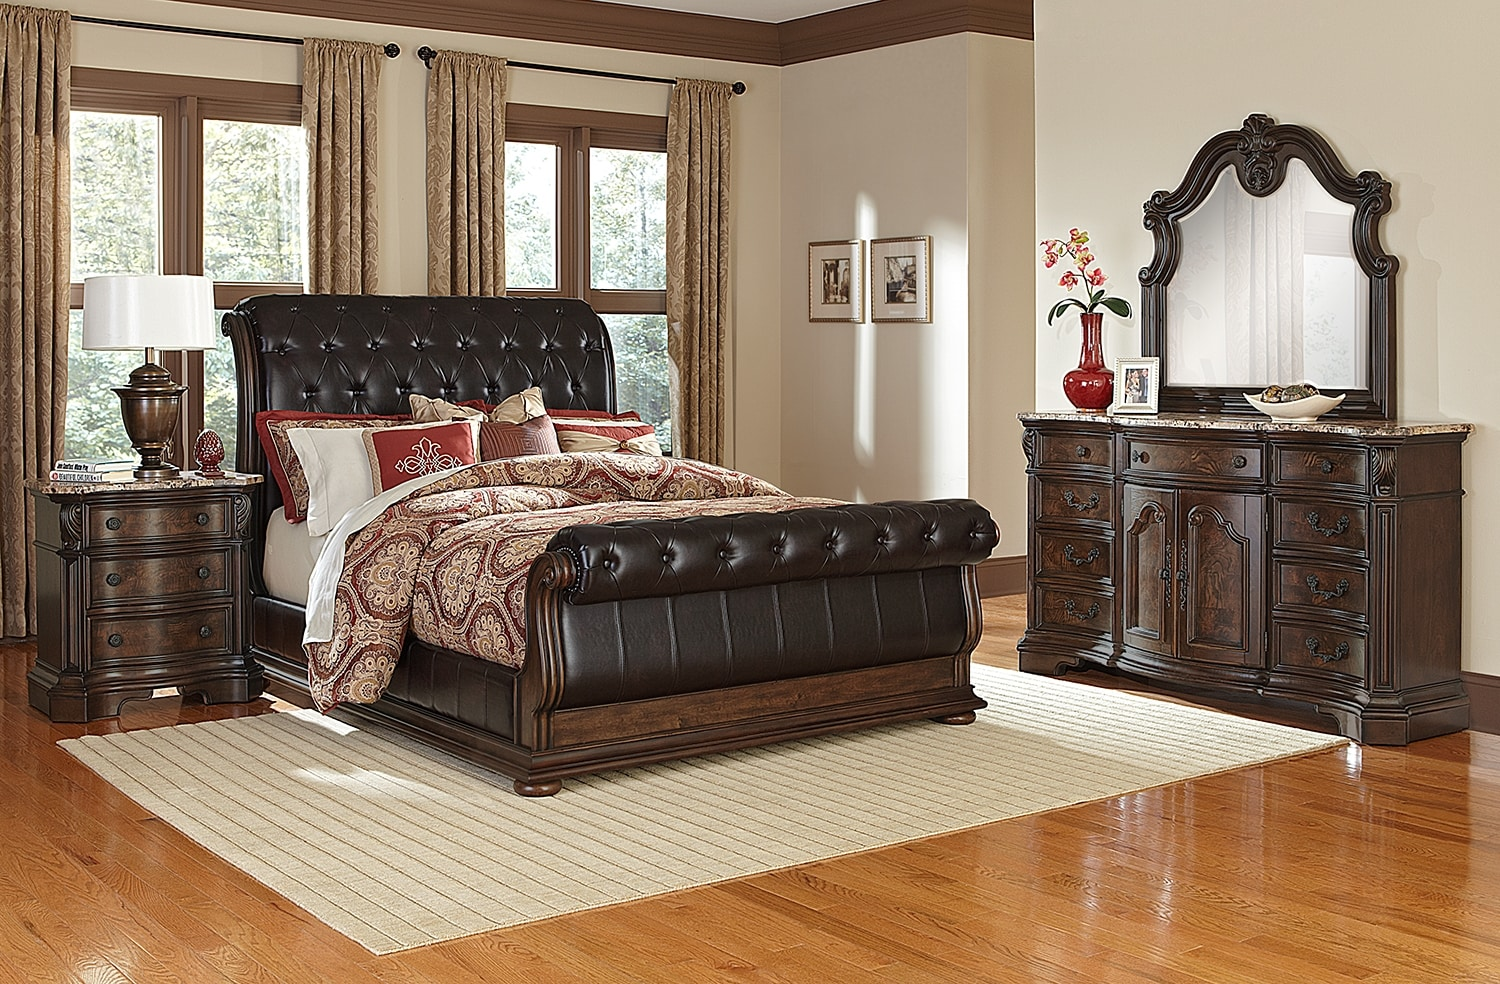 Sleigh Bedroom Set Large Picture Of C4937 6 Pc Queen Sleigh